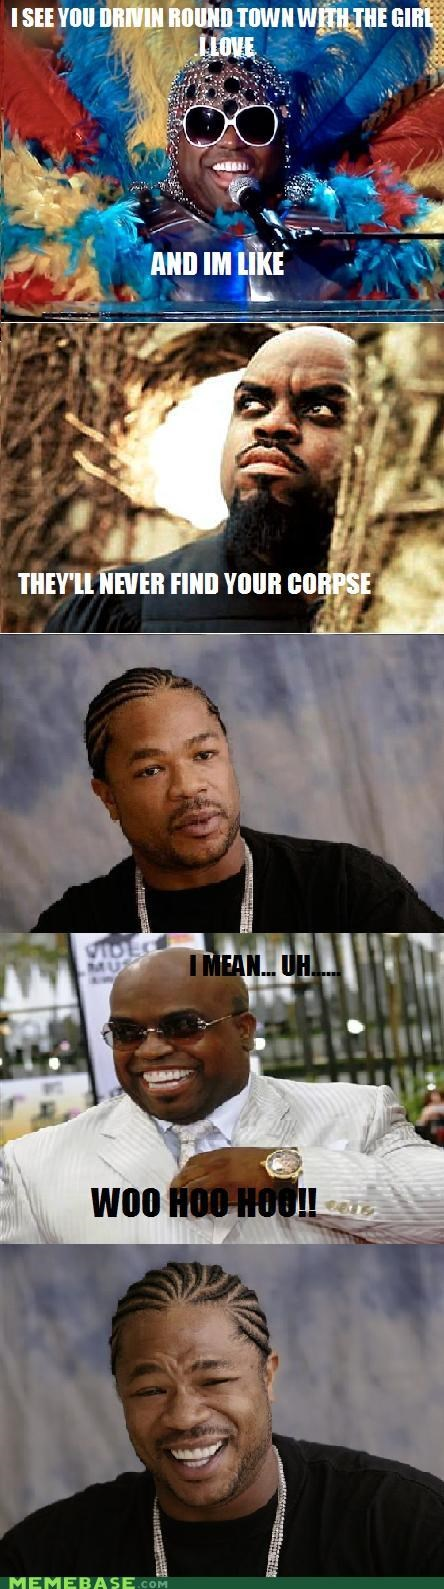 Psycho Cee Lo and Weirded out Xzibit